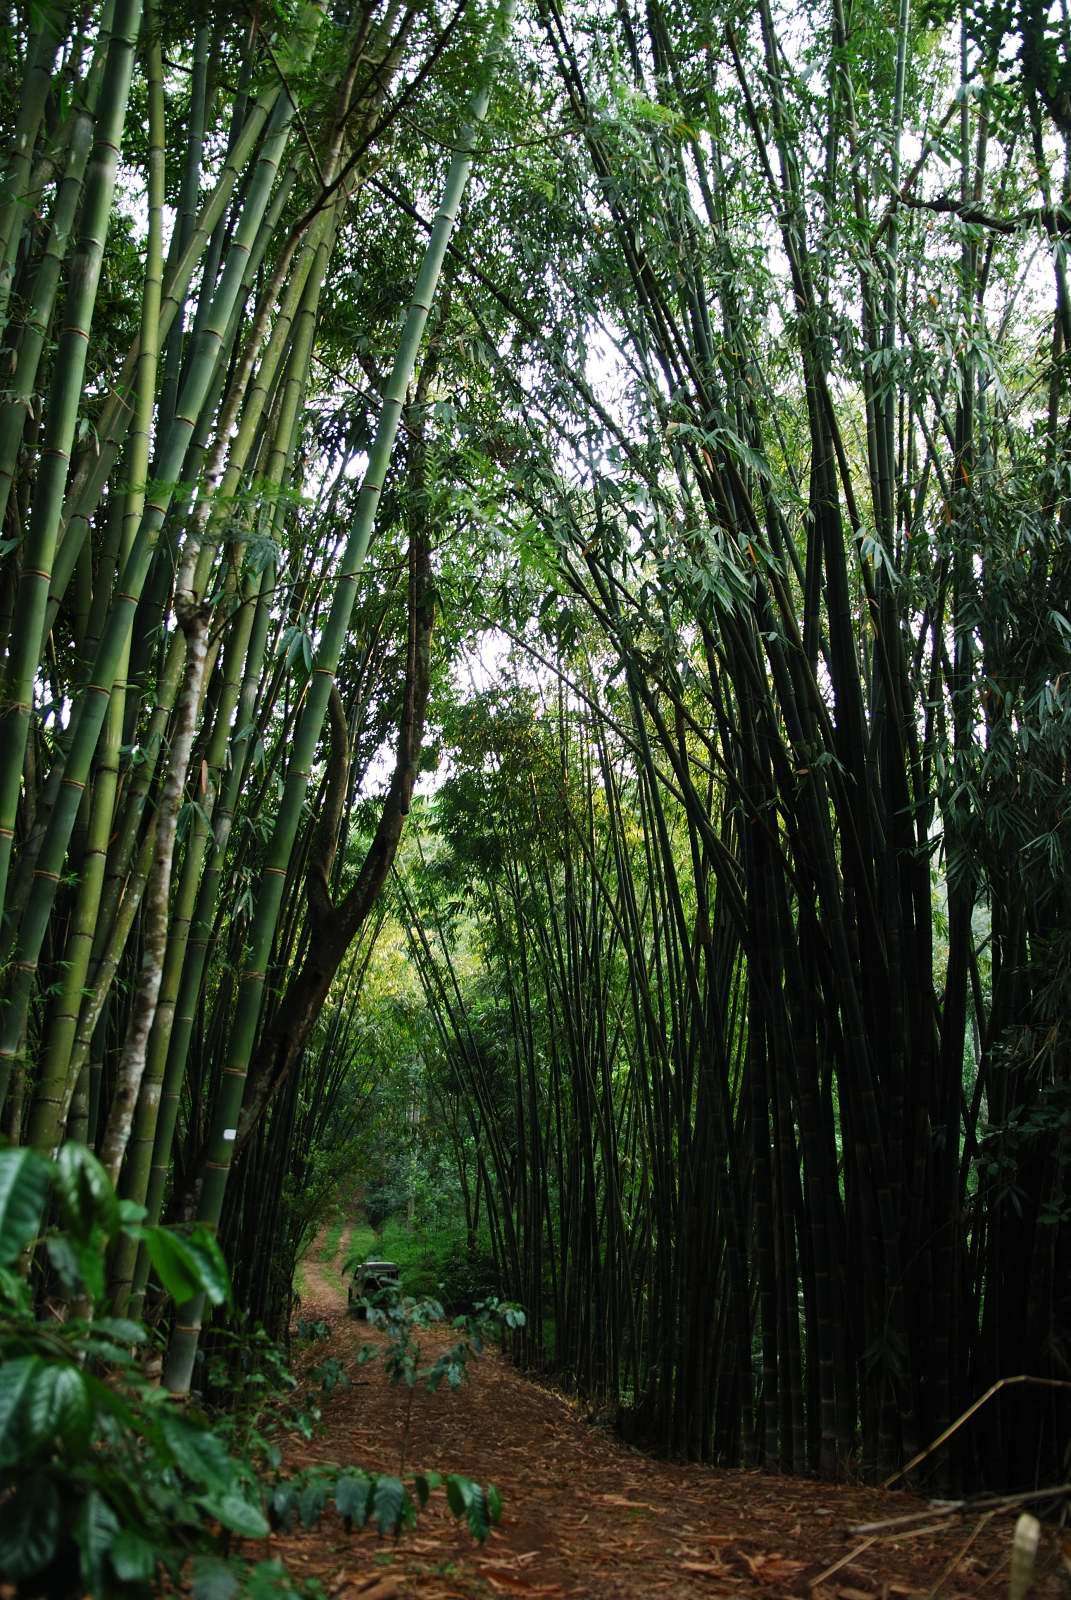 Our Burmese Bamboo groves